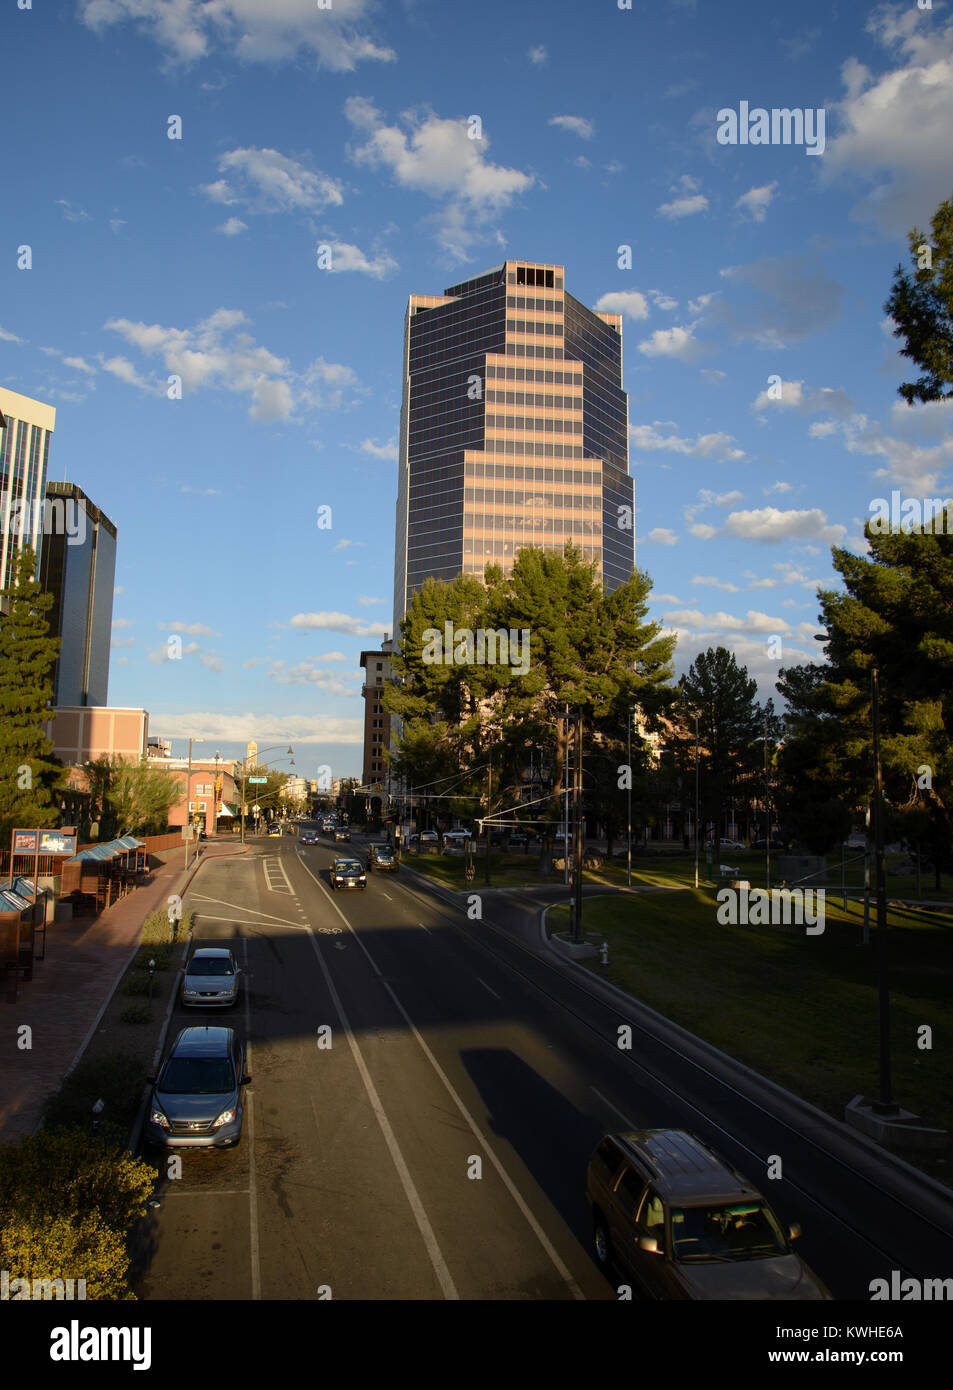 Congress Street, downtown Tucson, Arizona, USA. - Stock Image